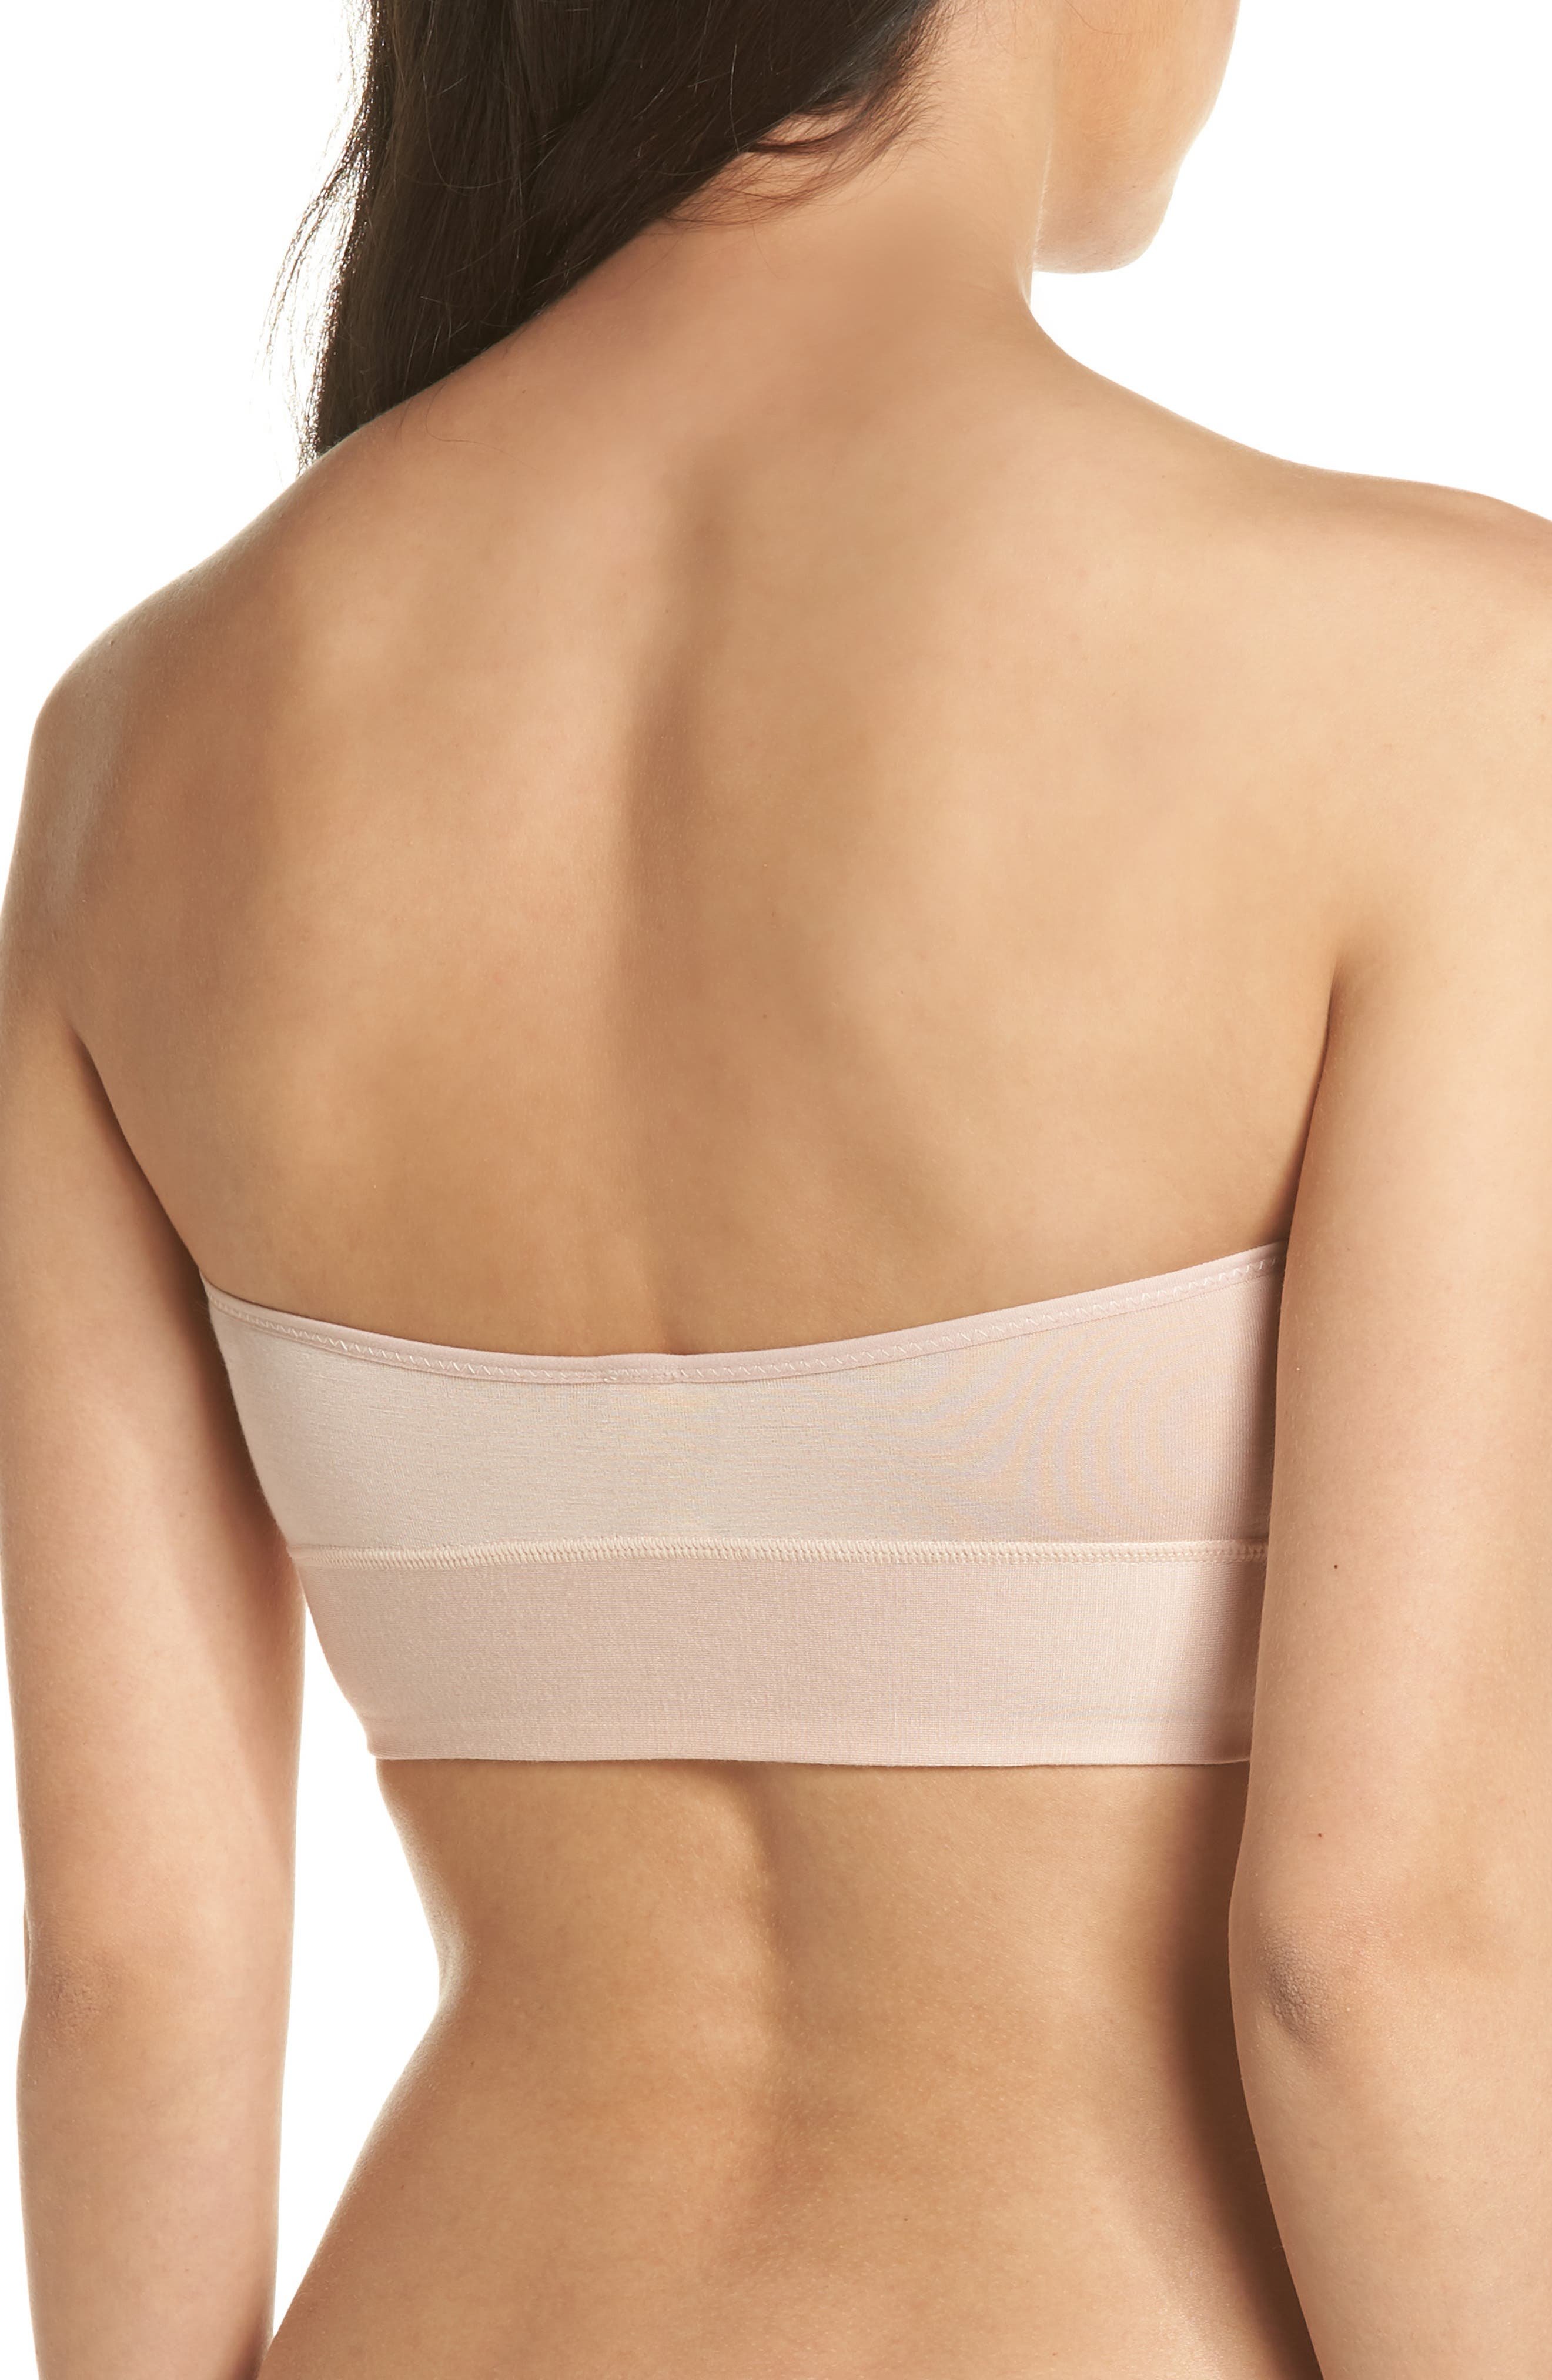 Strapless Bandeau Bra,                             Alternate thumbnail 2, color,                             250